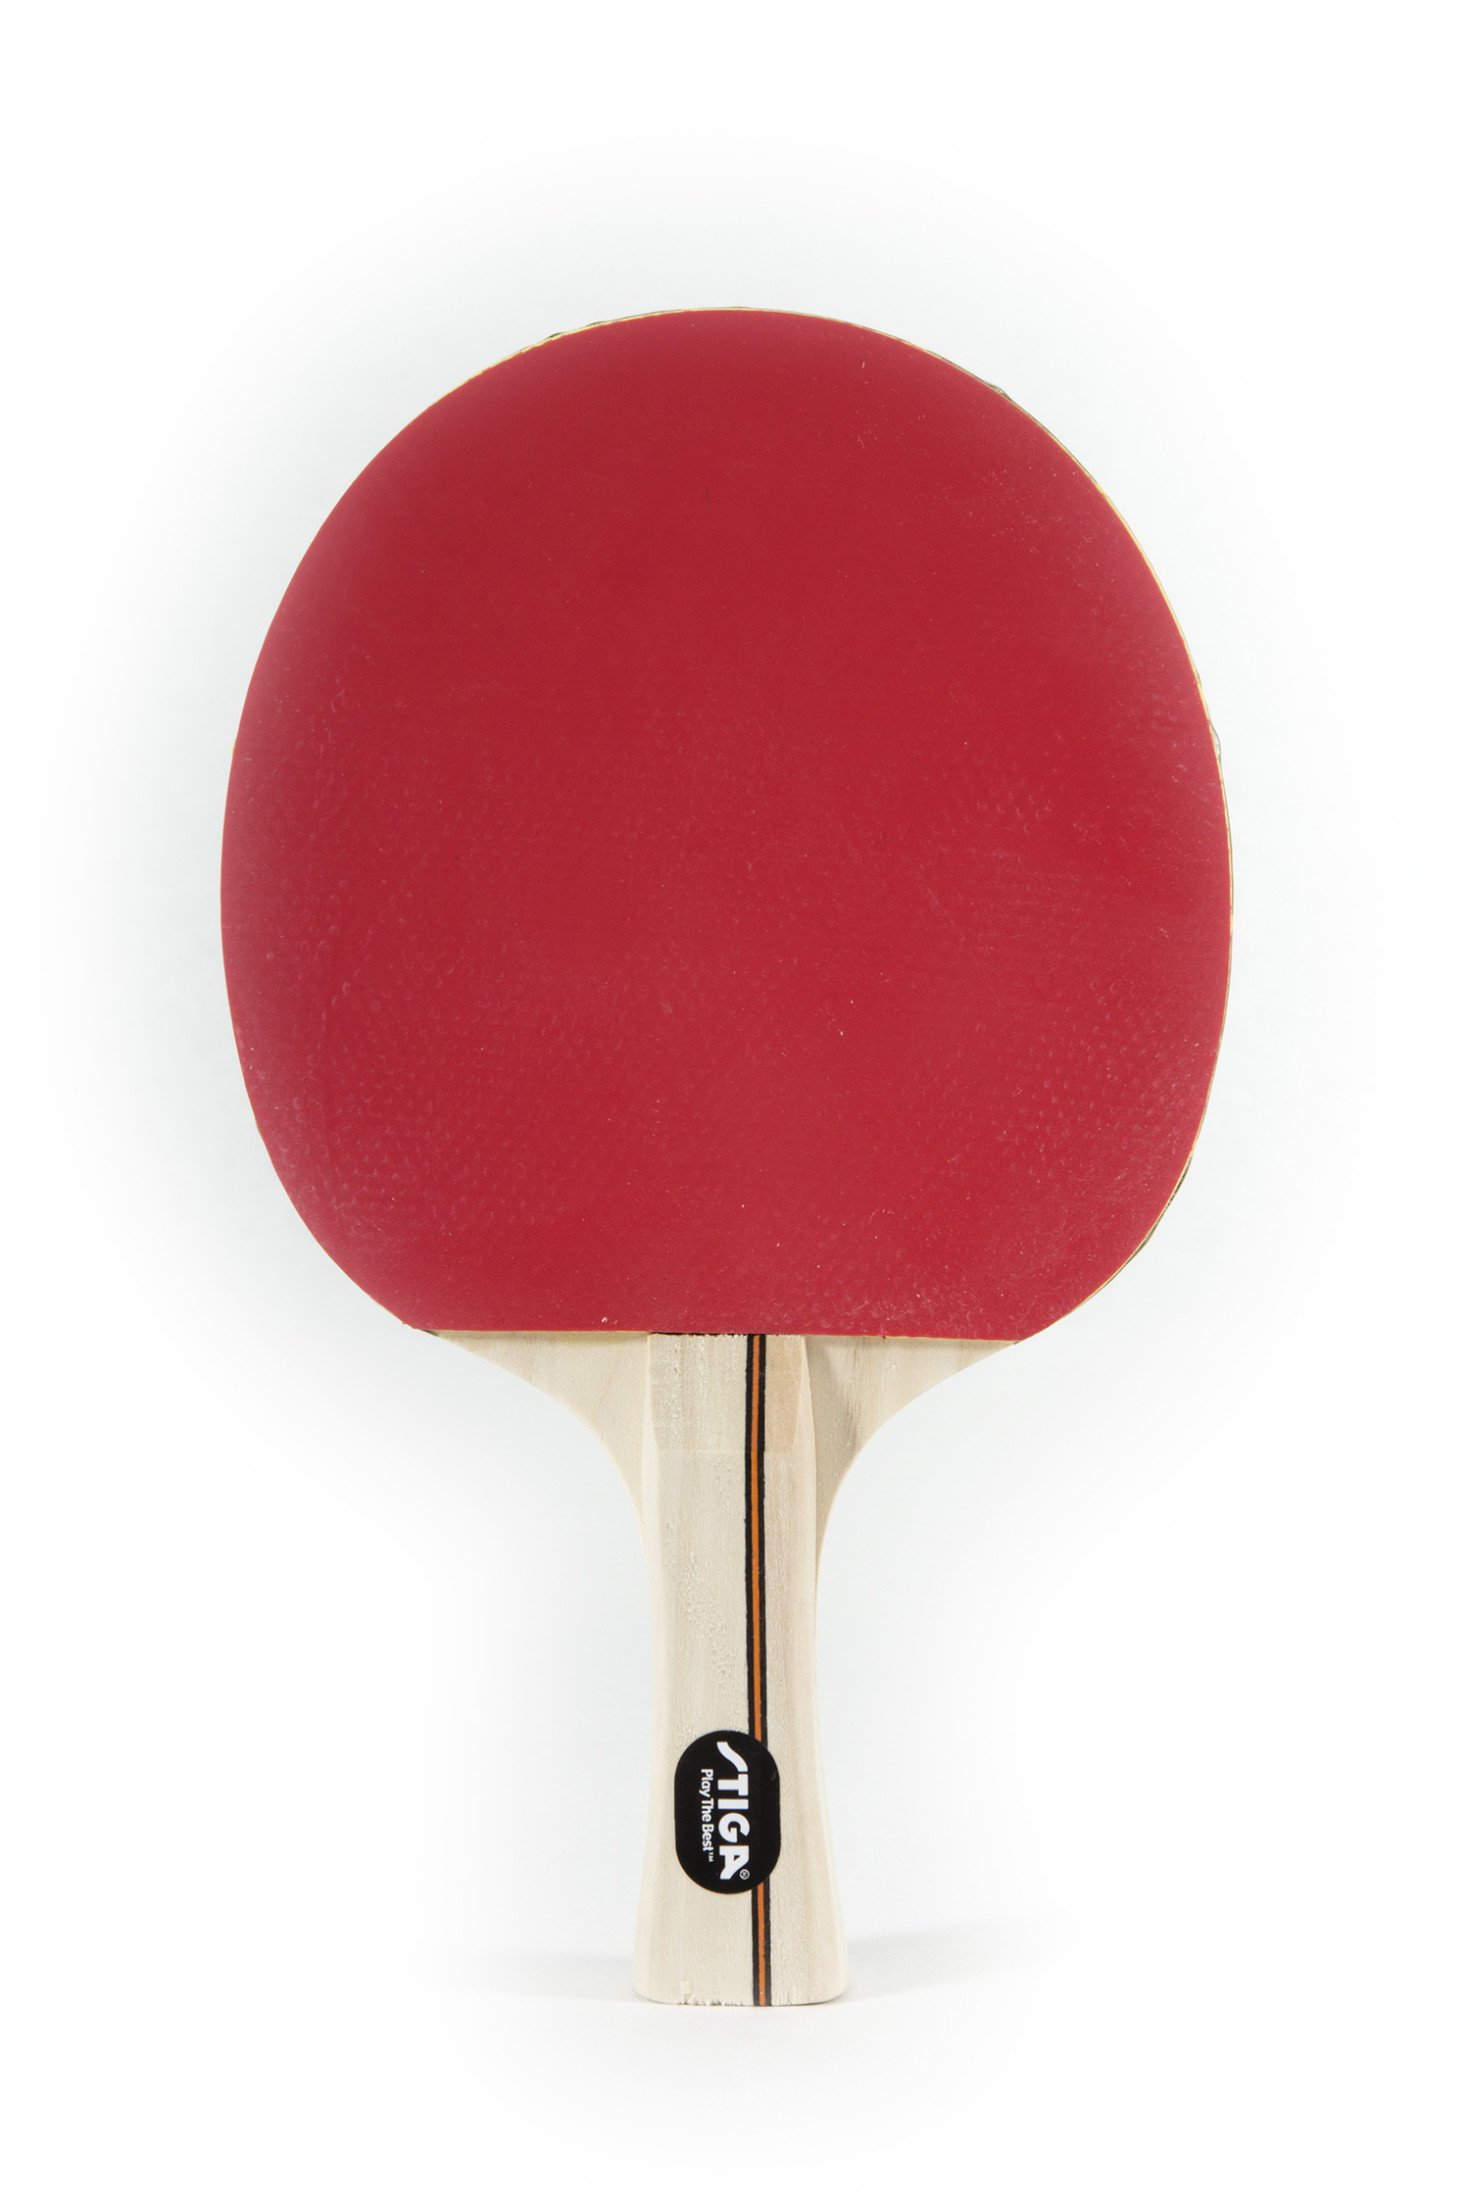 STIGA Performance 4-Player Table Tennis Racket Set with Inverted Rubber for Increased Ball Control and Added Spin by STIGA (Image #10)